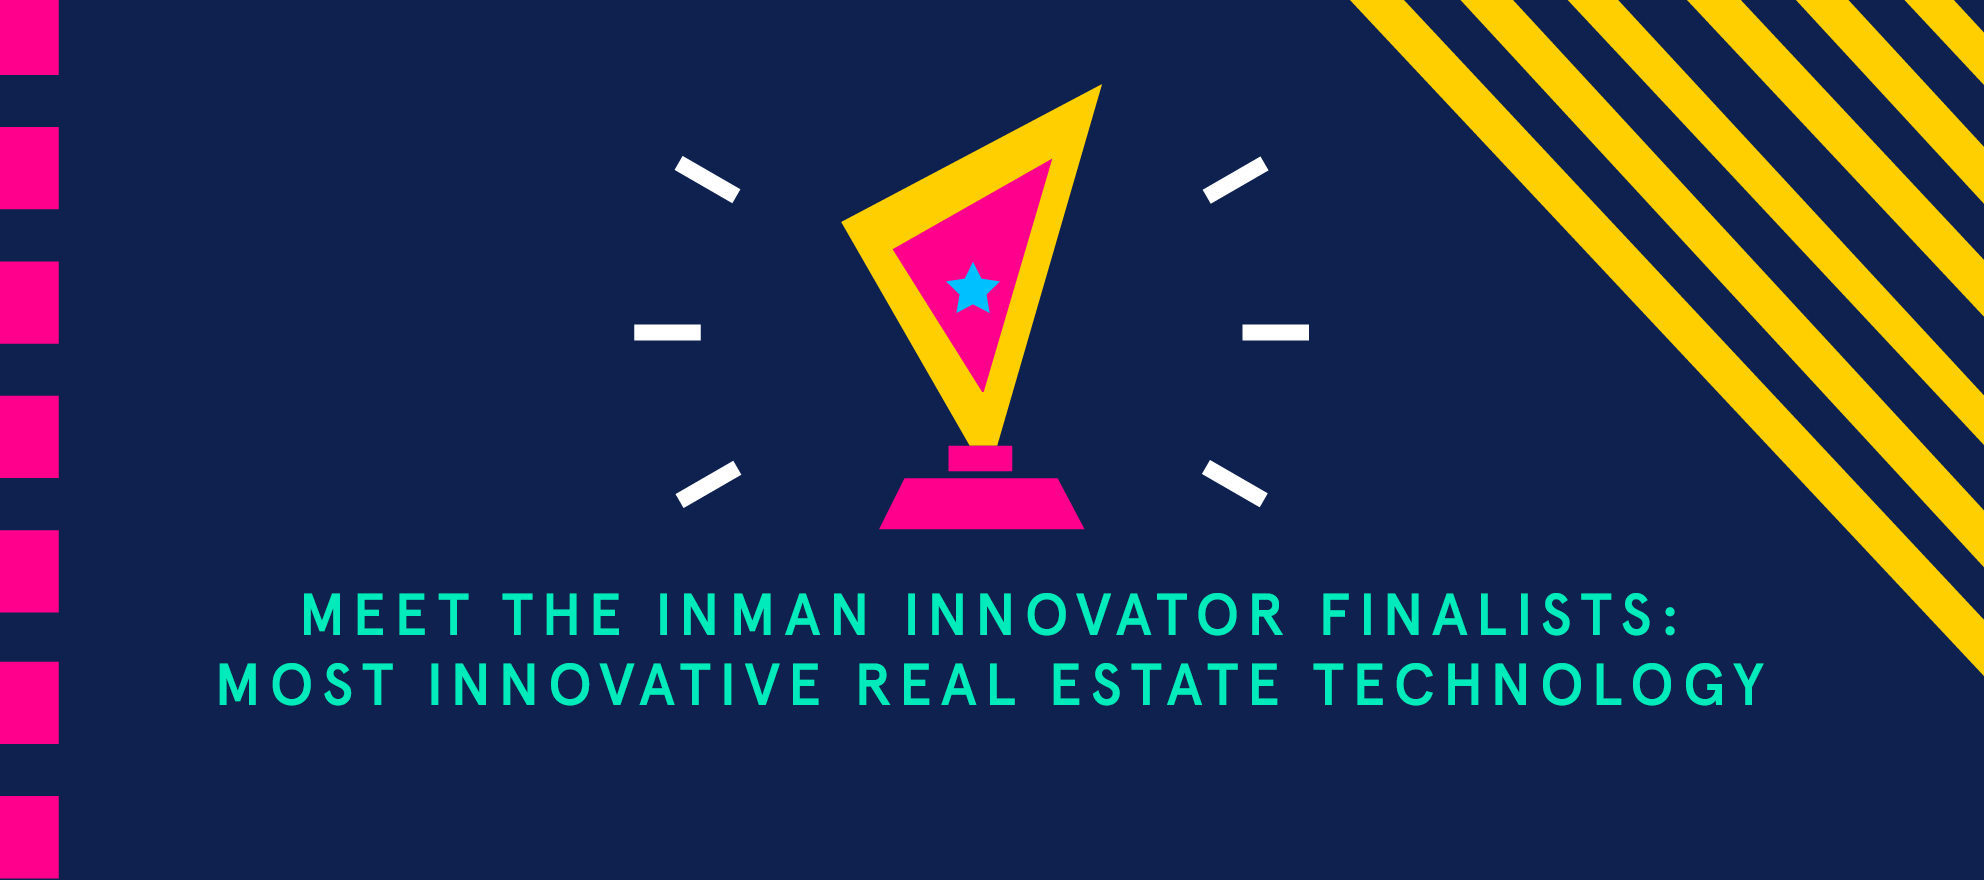 inman innovator finalists, most innovative real estate technology